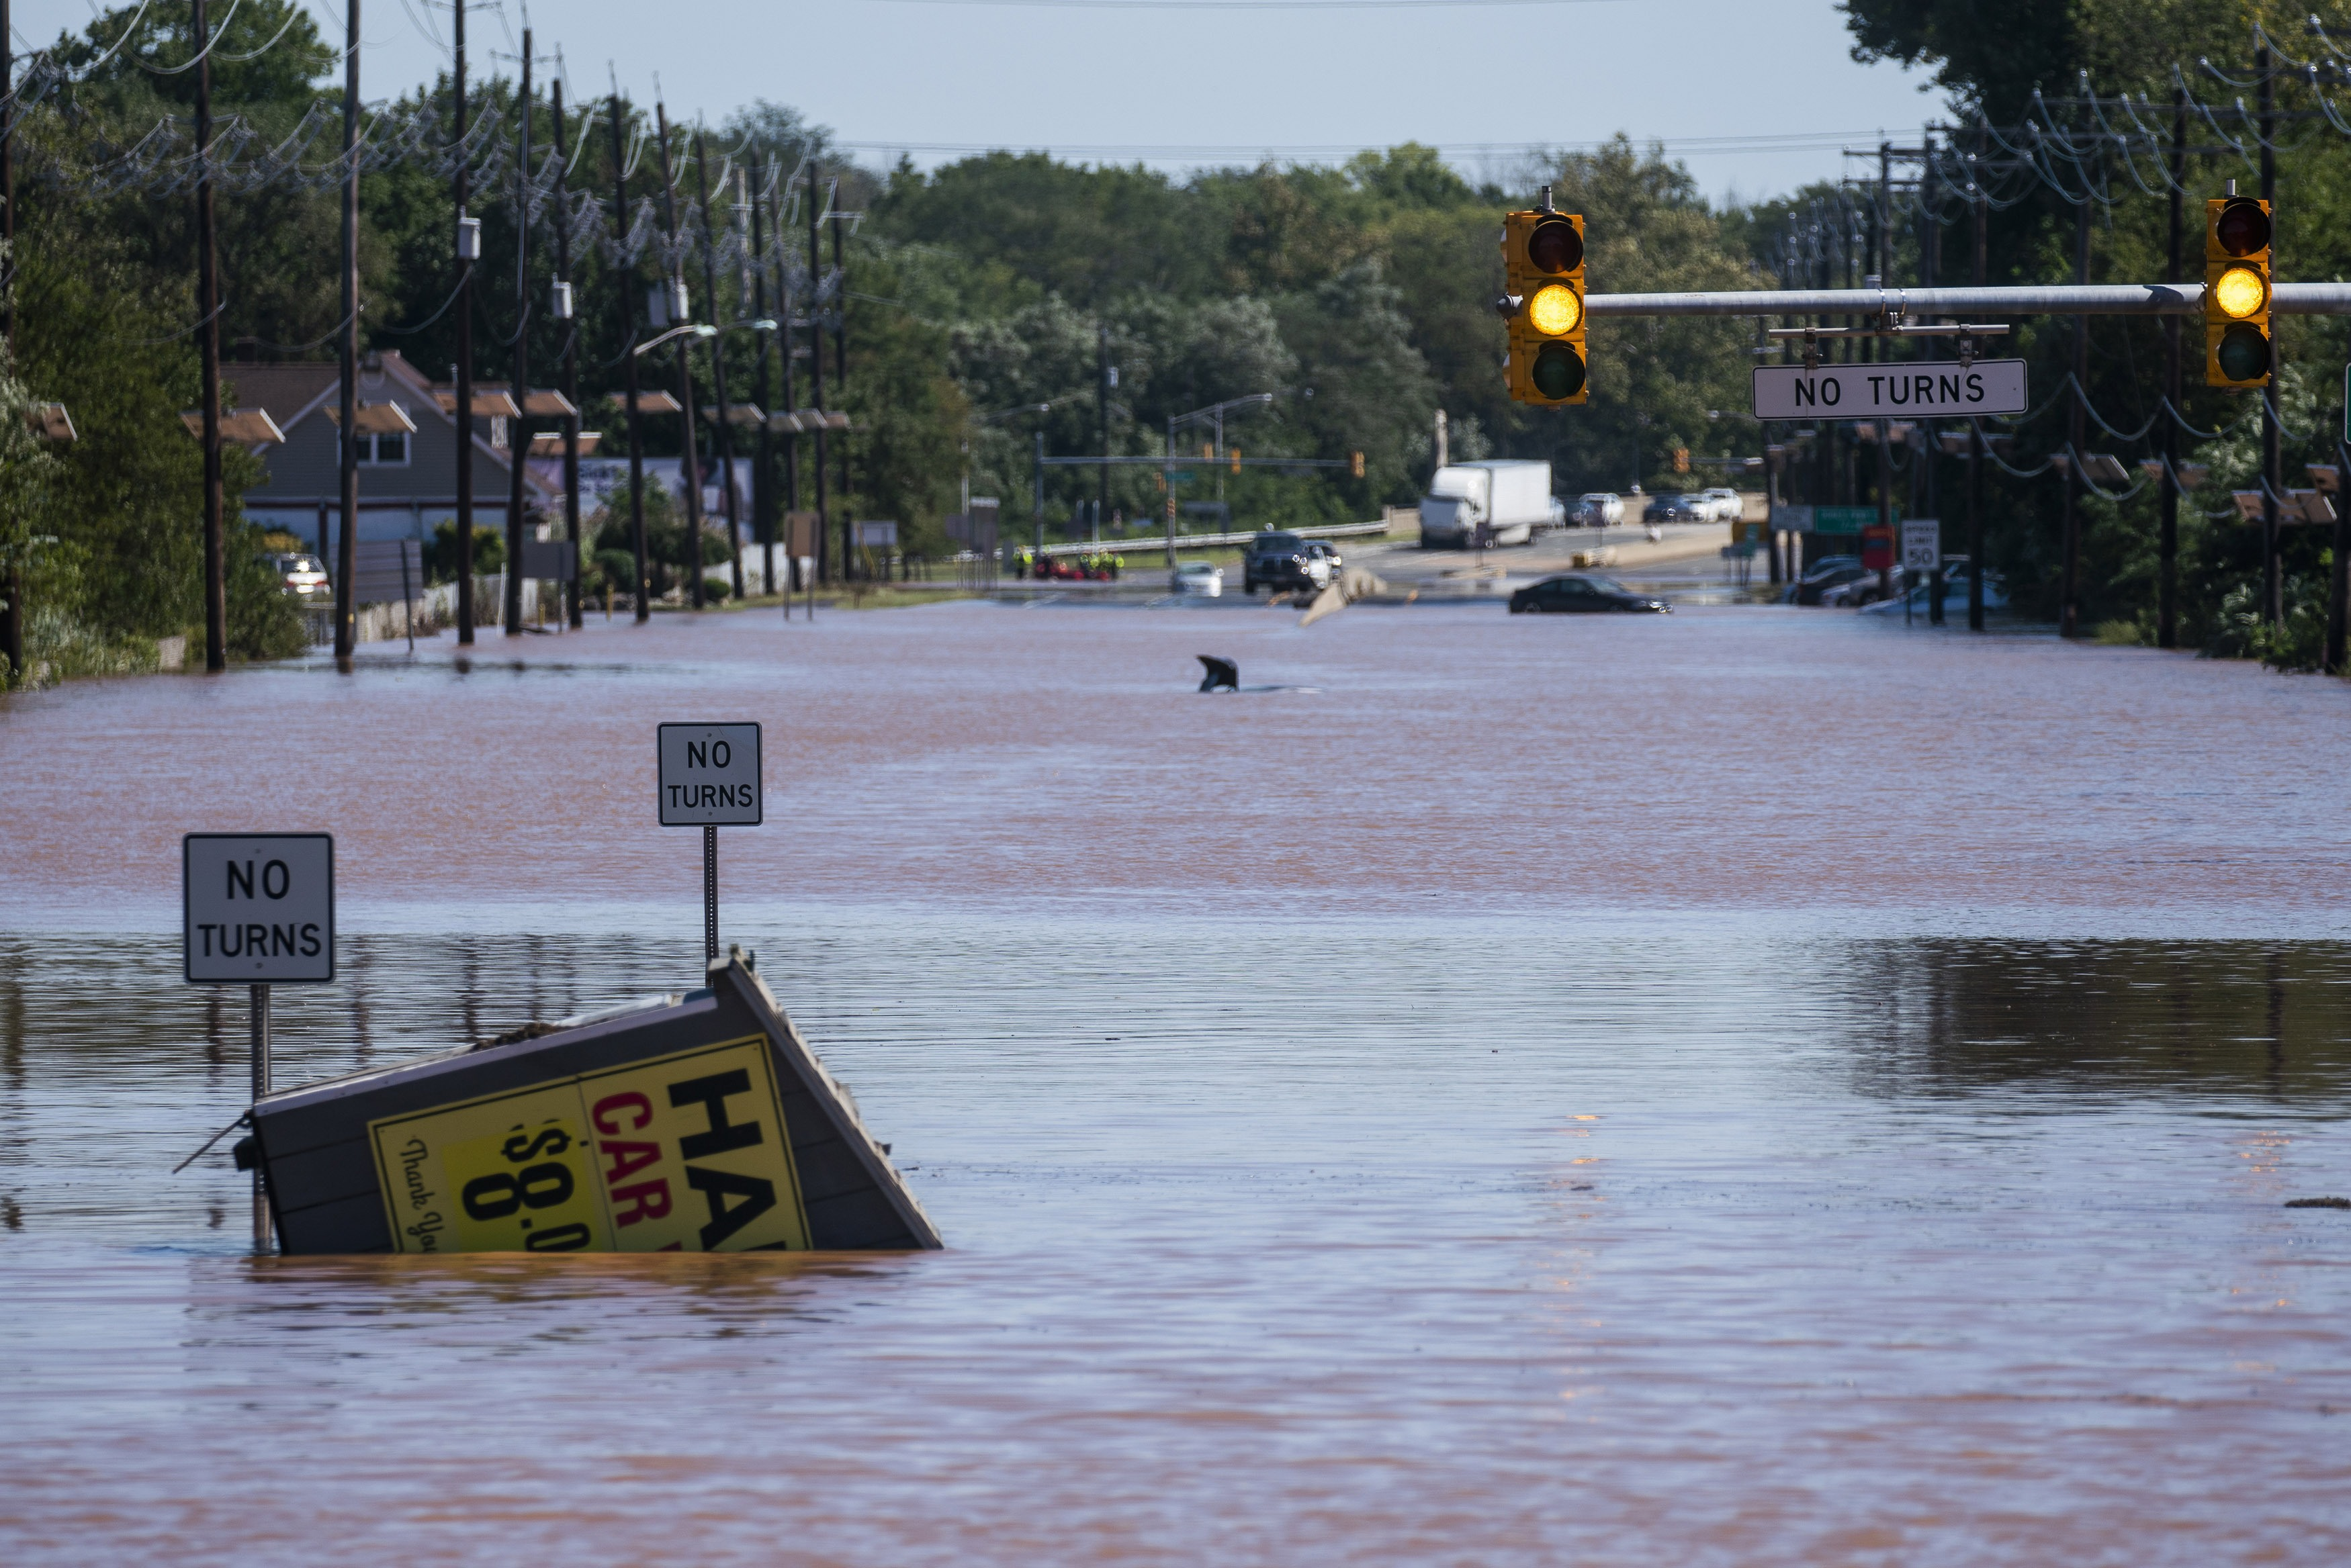 A flooded area in Somerville, N.J.